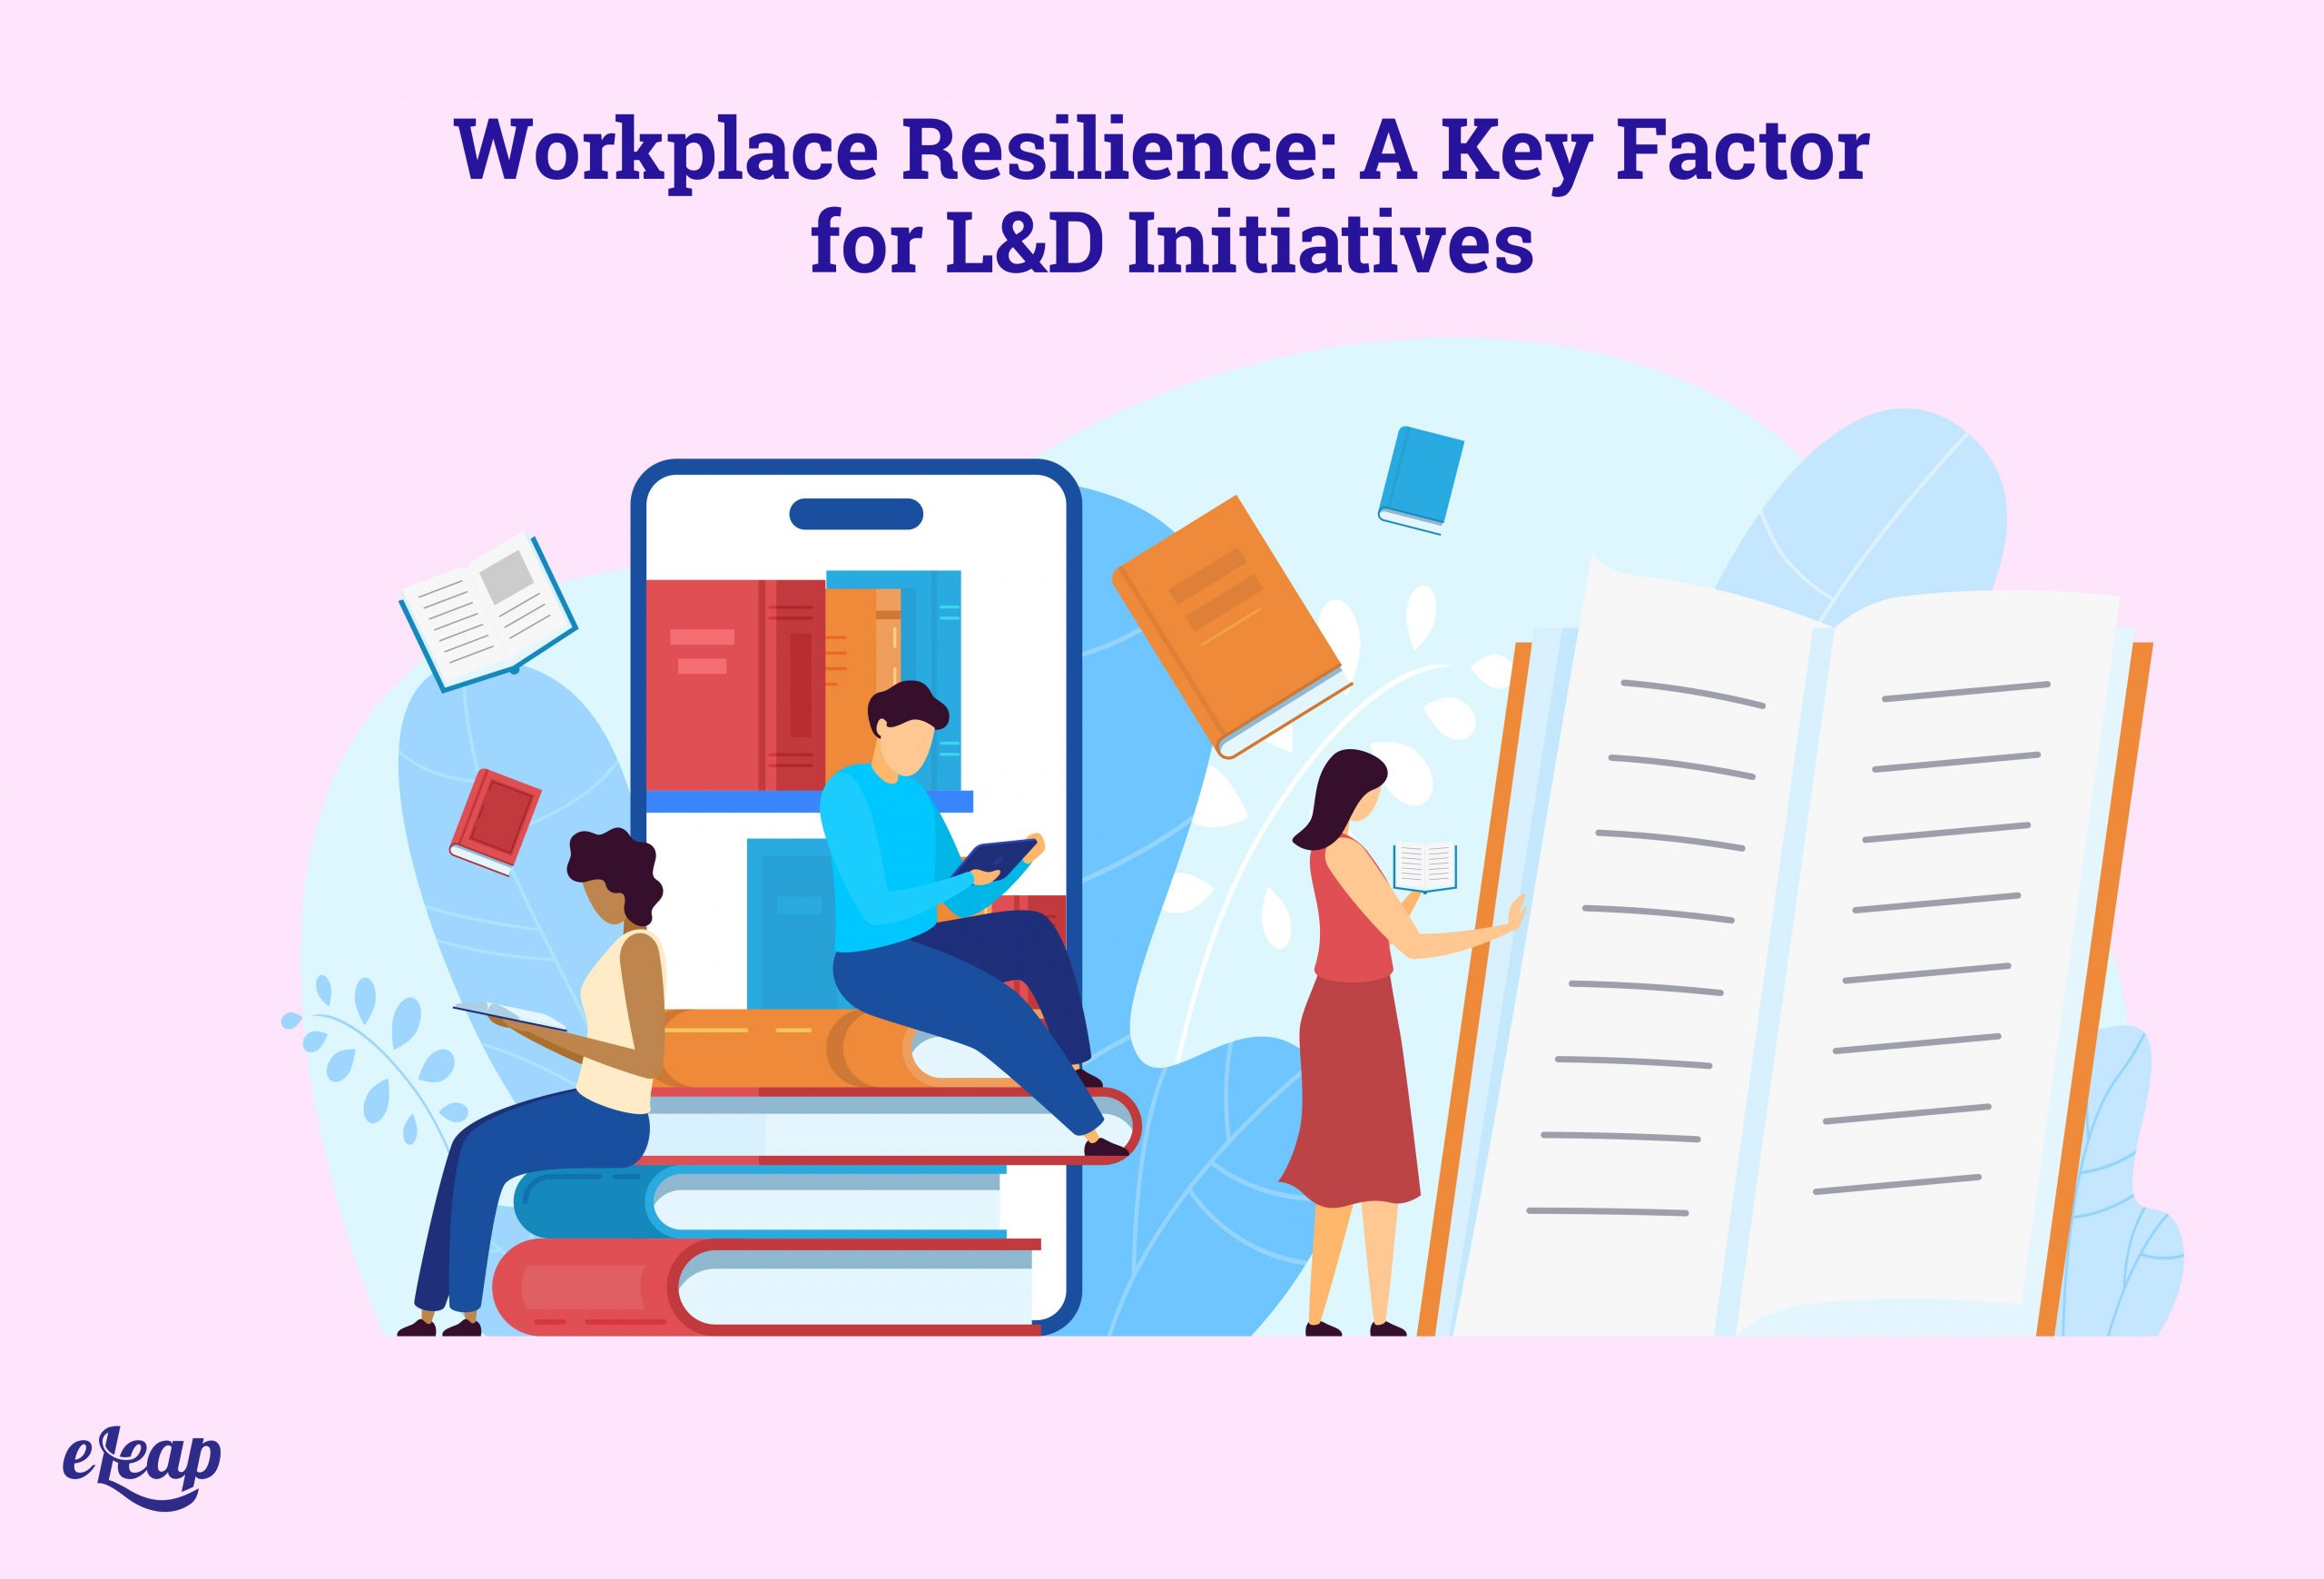 Workplace Resilience: A Key Factor for L&D Initiatives